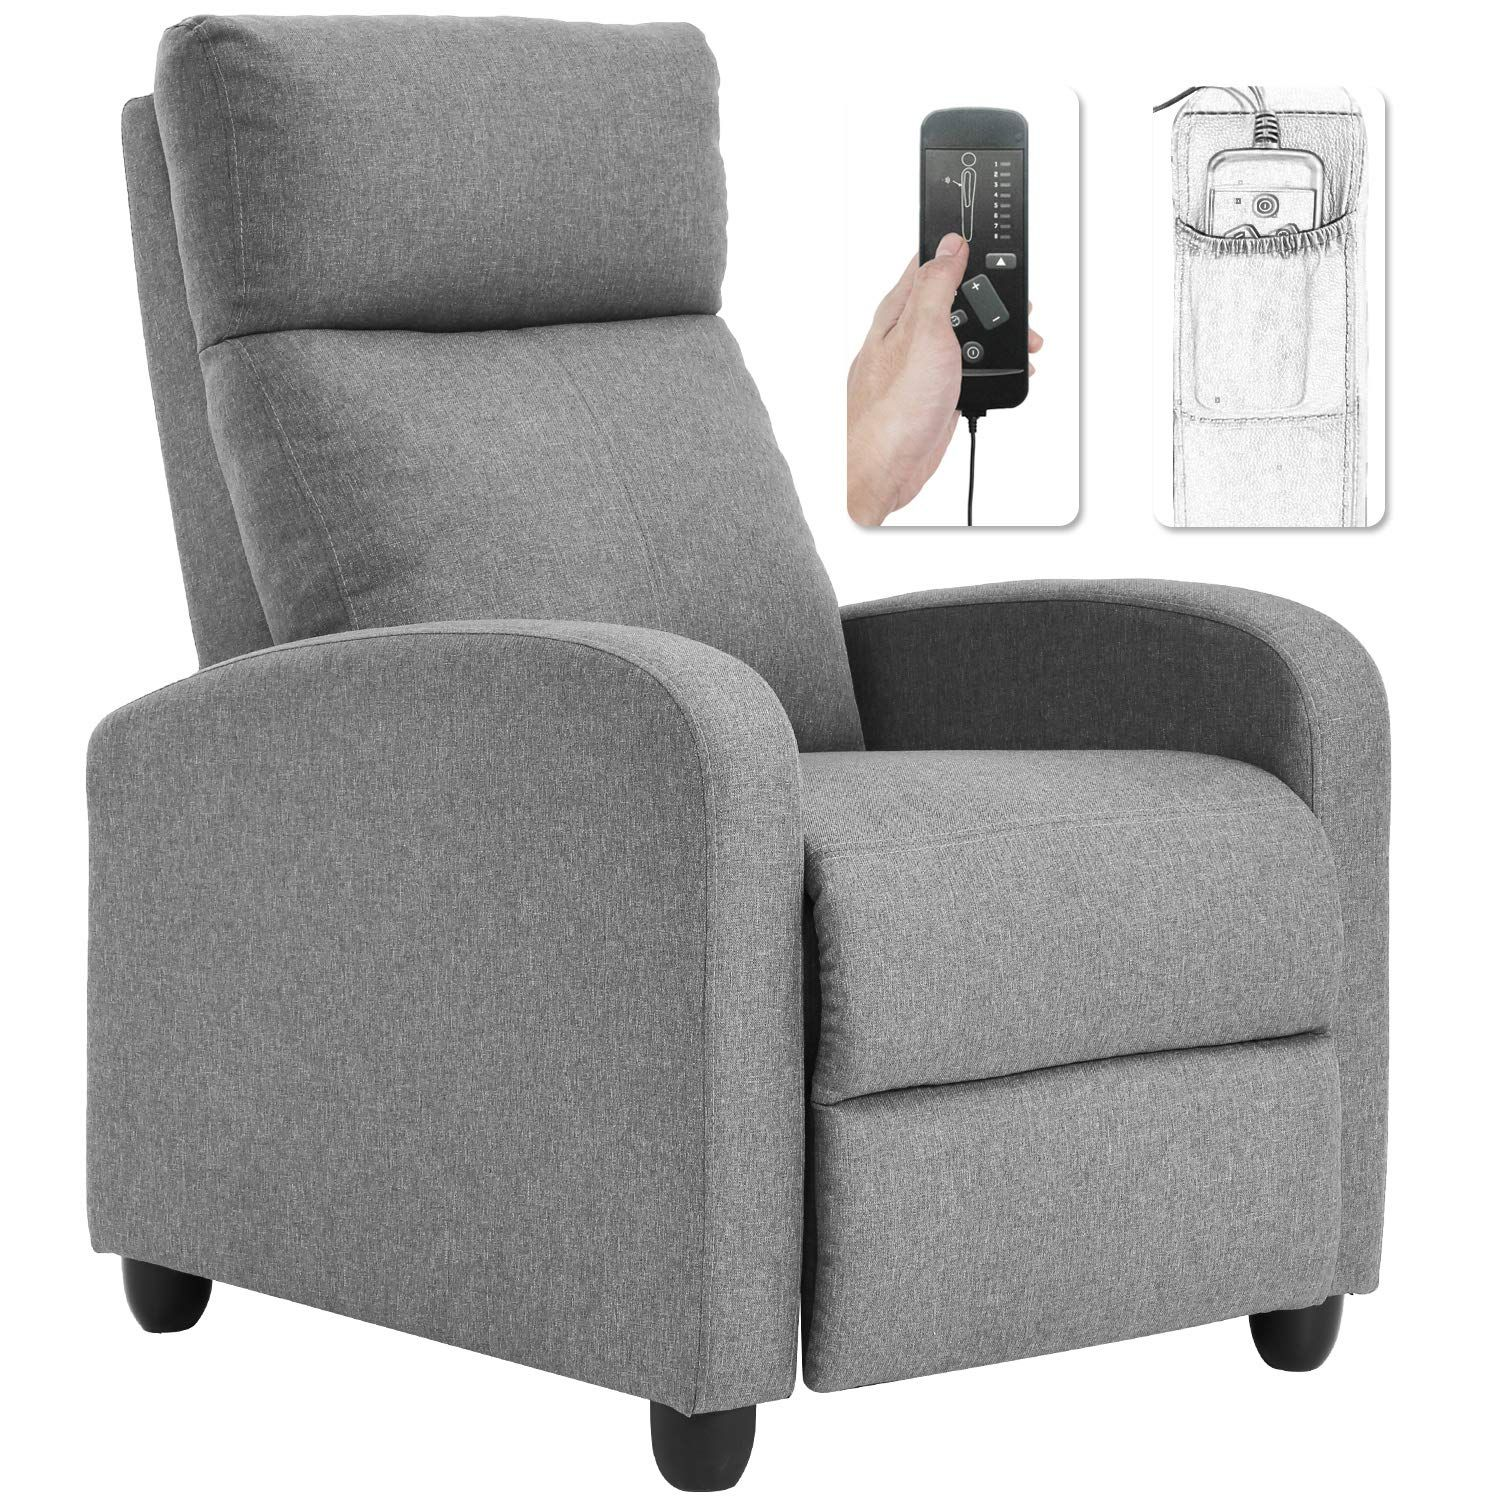 Recliner Chair For Living Room Winback Single Sofa Massage Recliner Sofa Reading Chair Home Theater Seat Recliner Chair Living Room Chairs Home Theater Seating #small #recliners #for #living #room